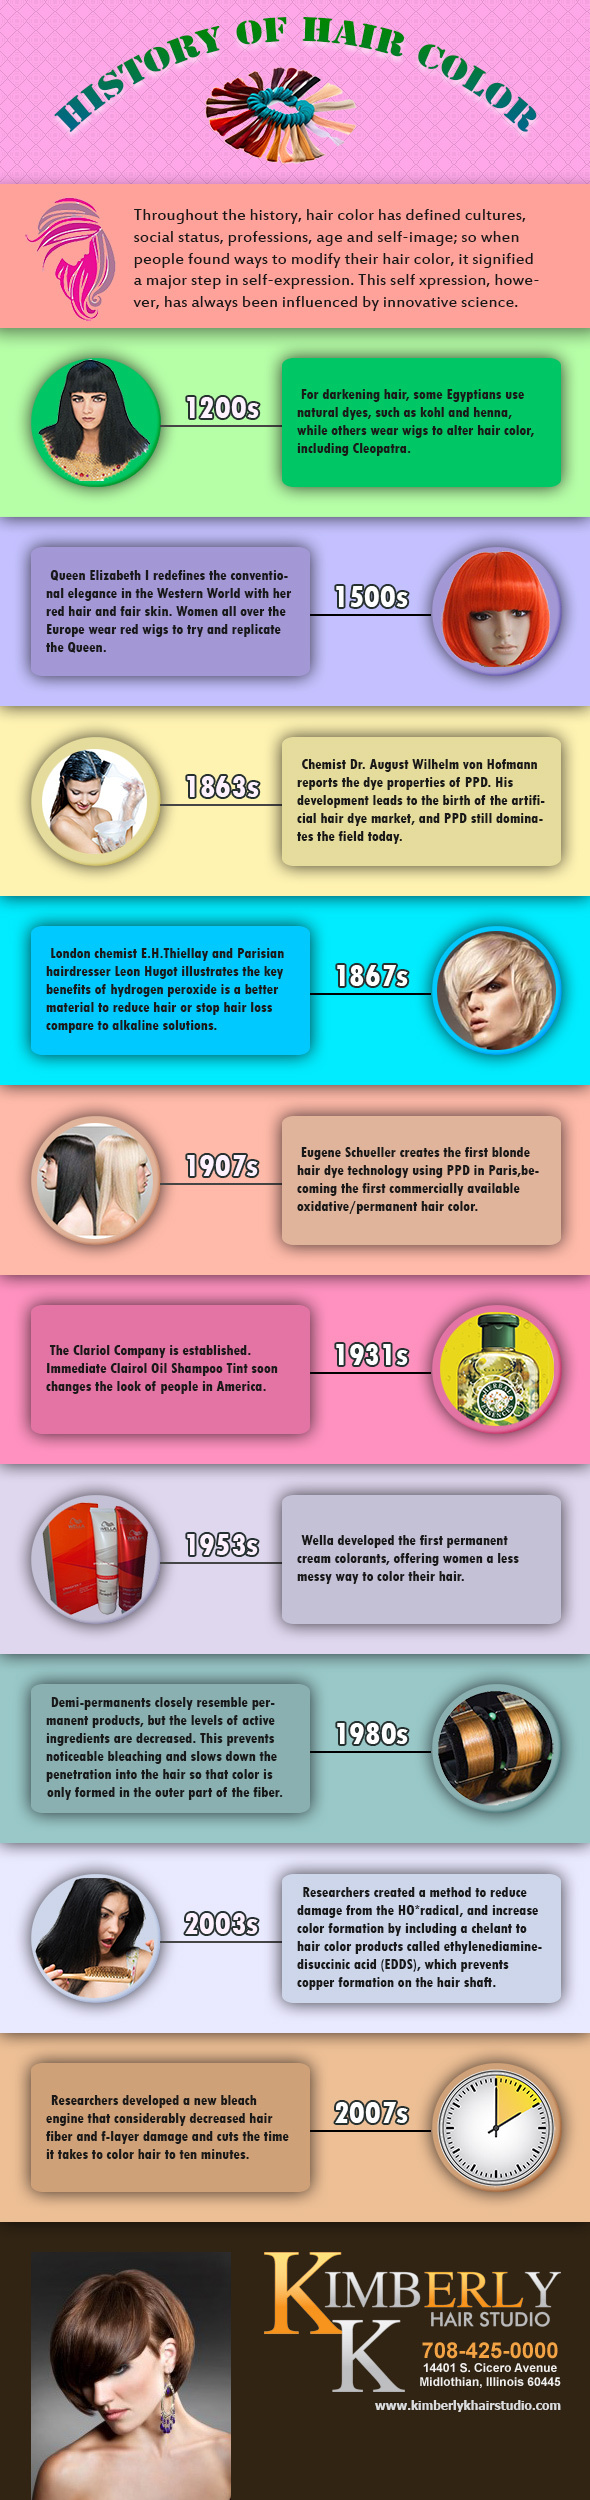 history-of-hair-color